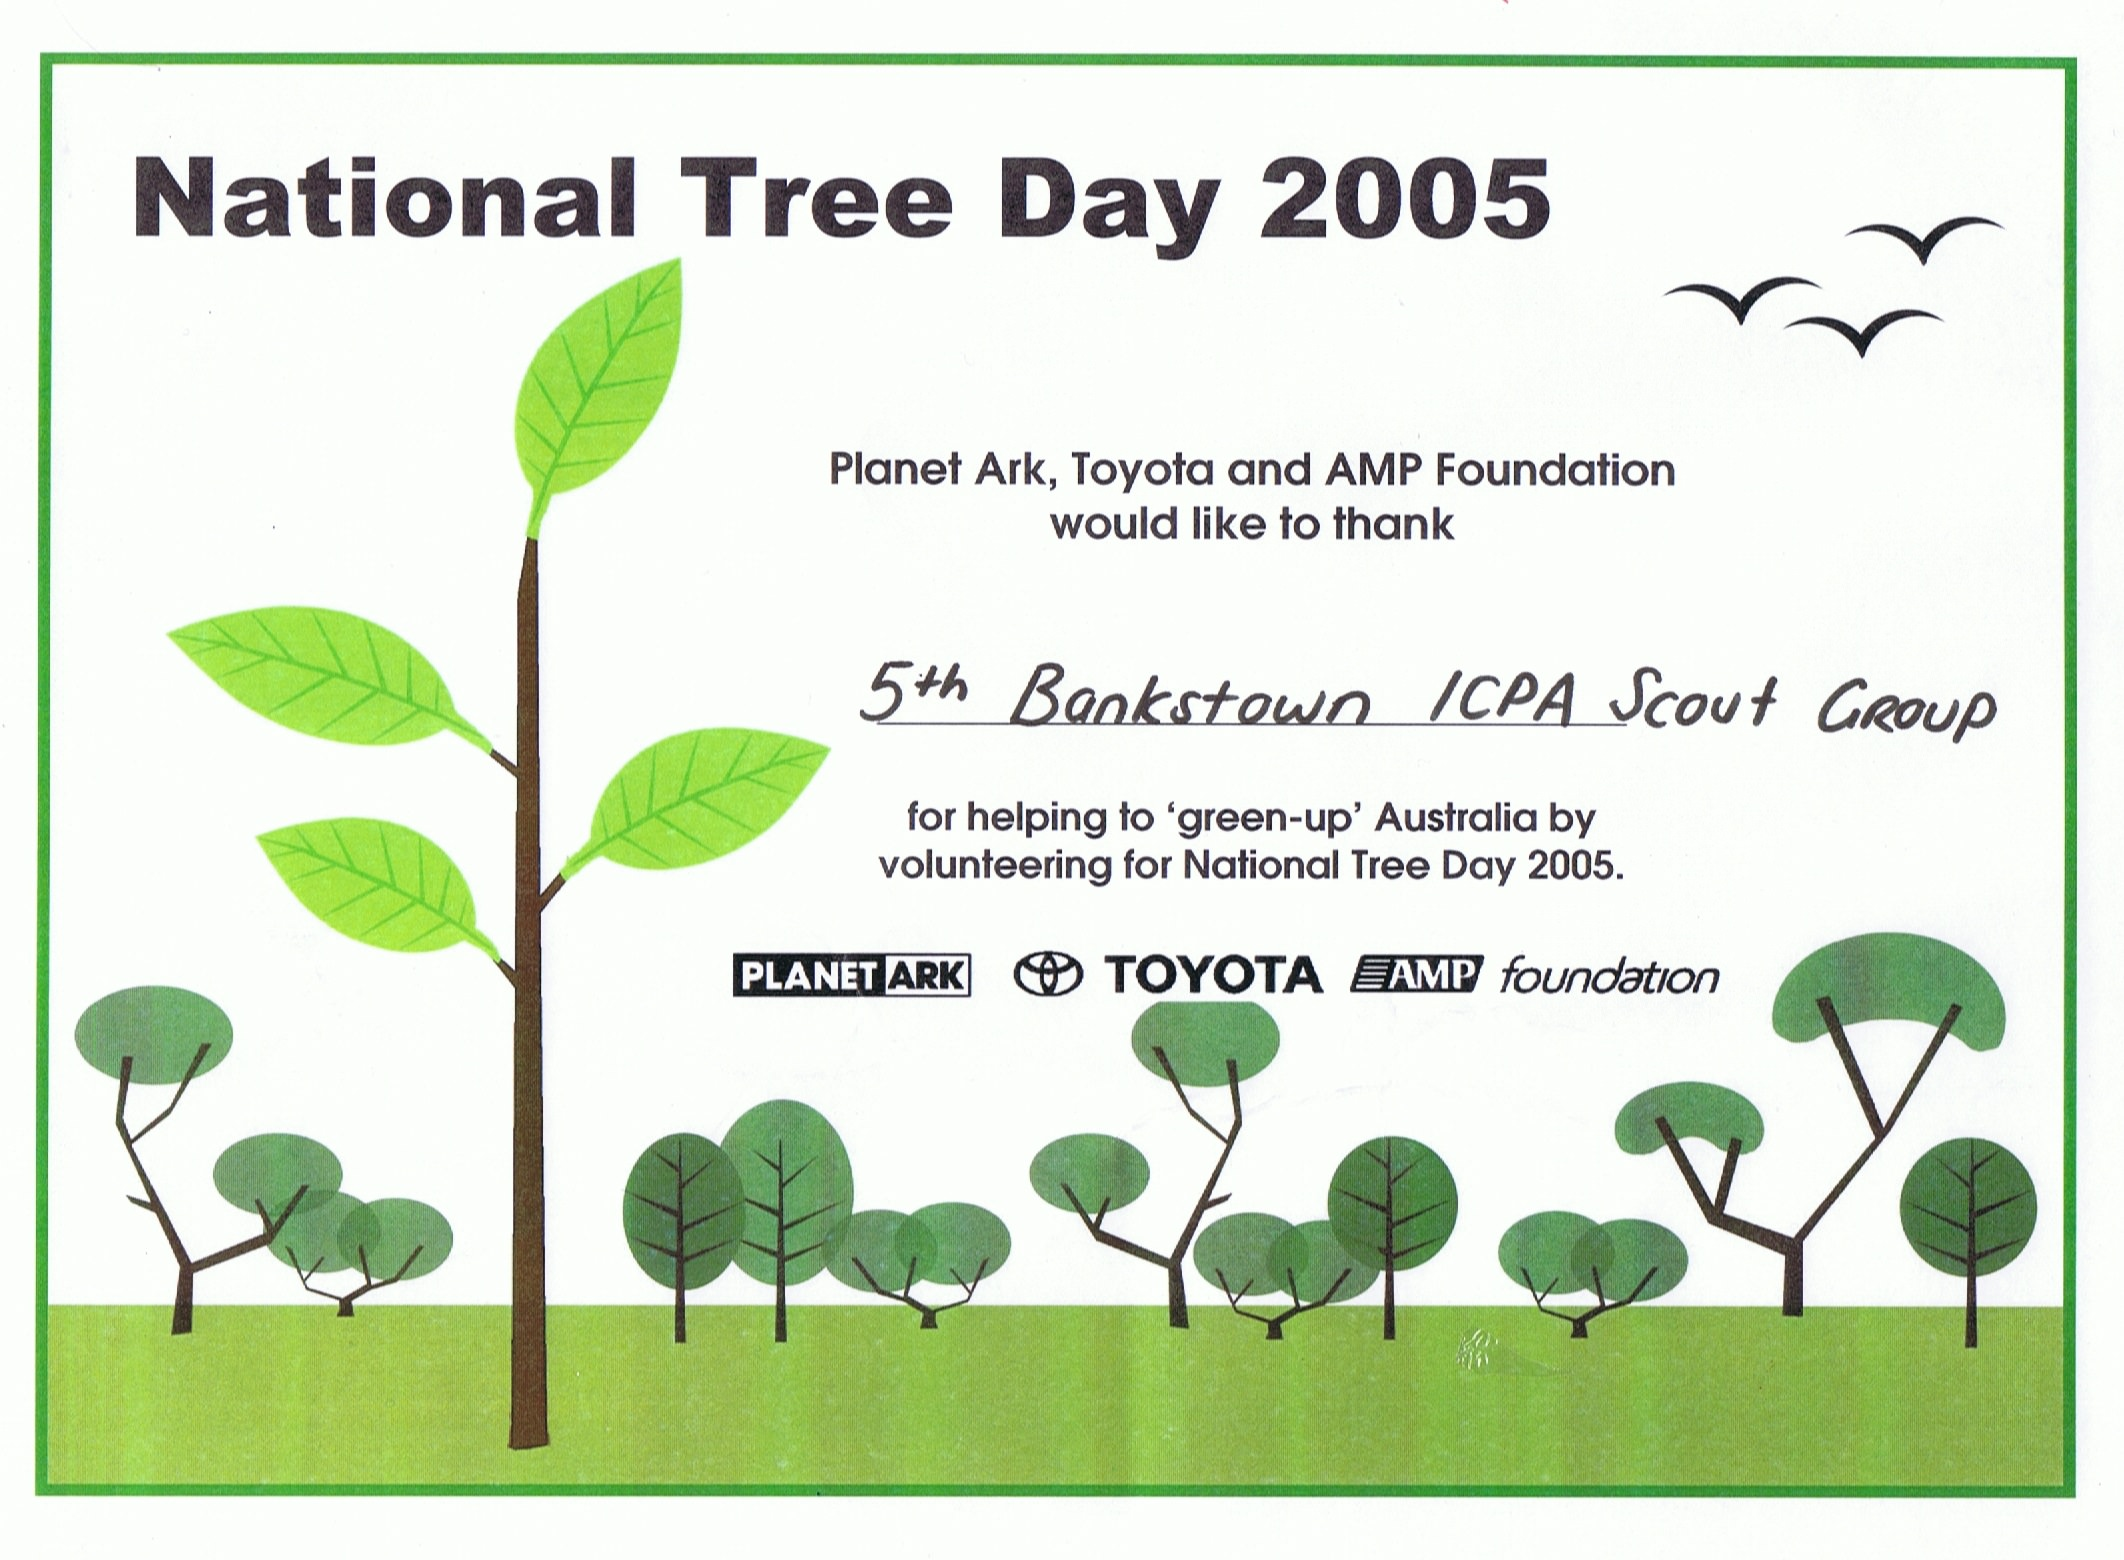 National Tree Day Certificate of Participation 2005